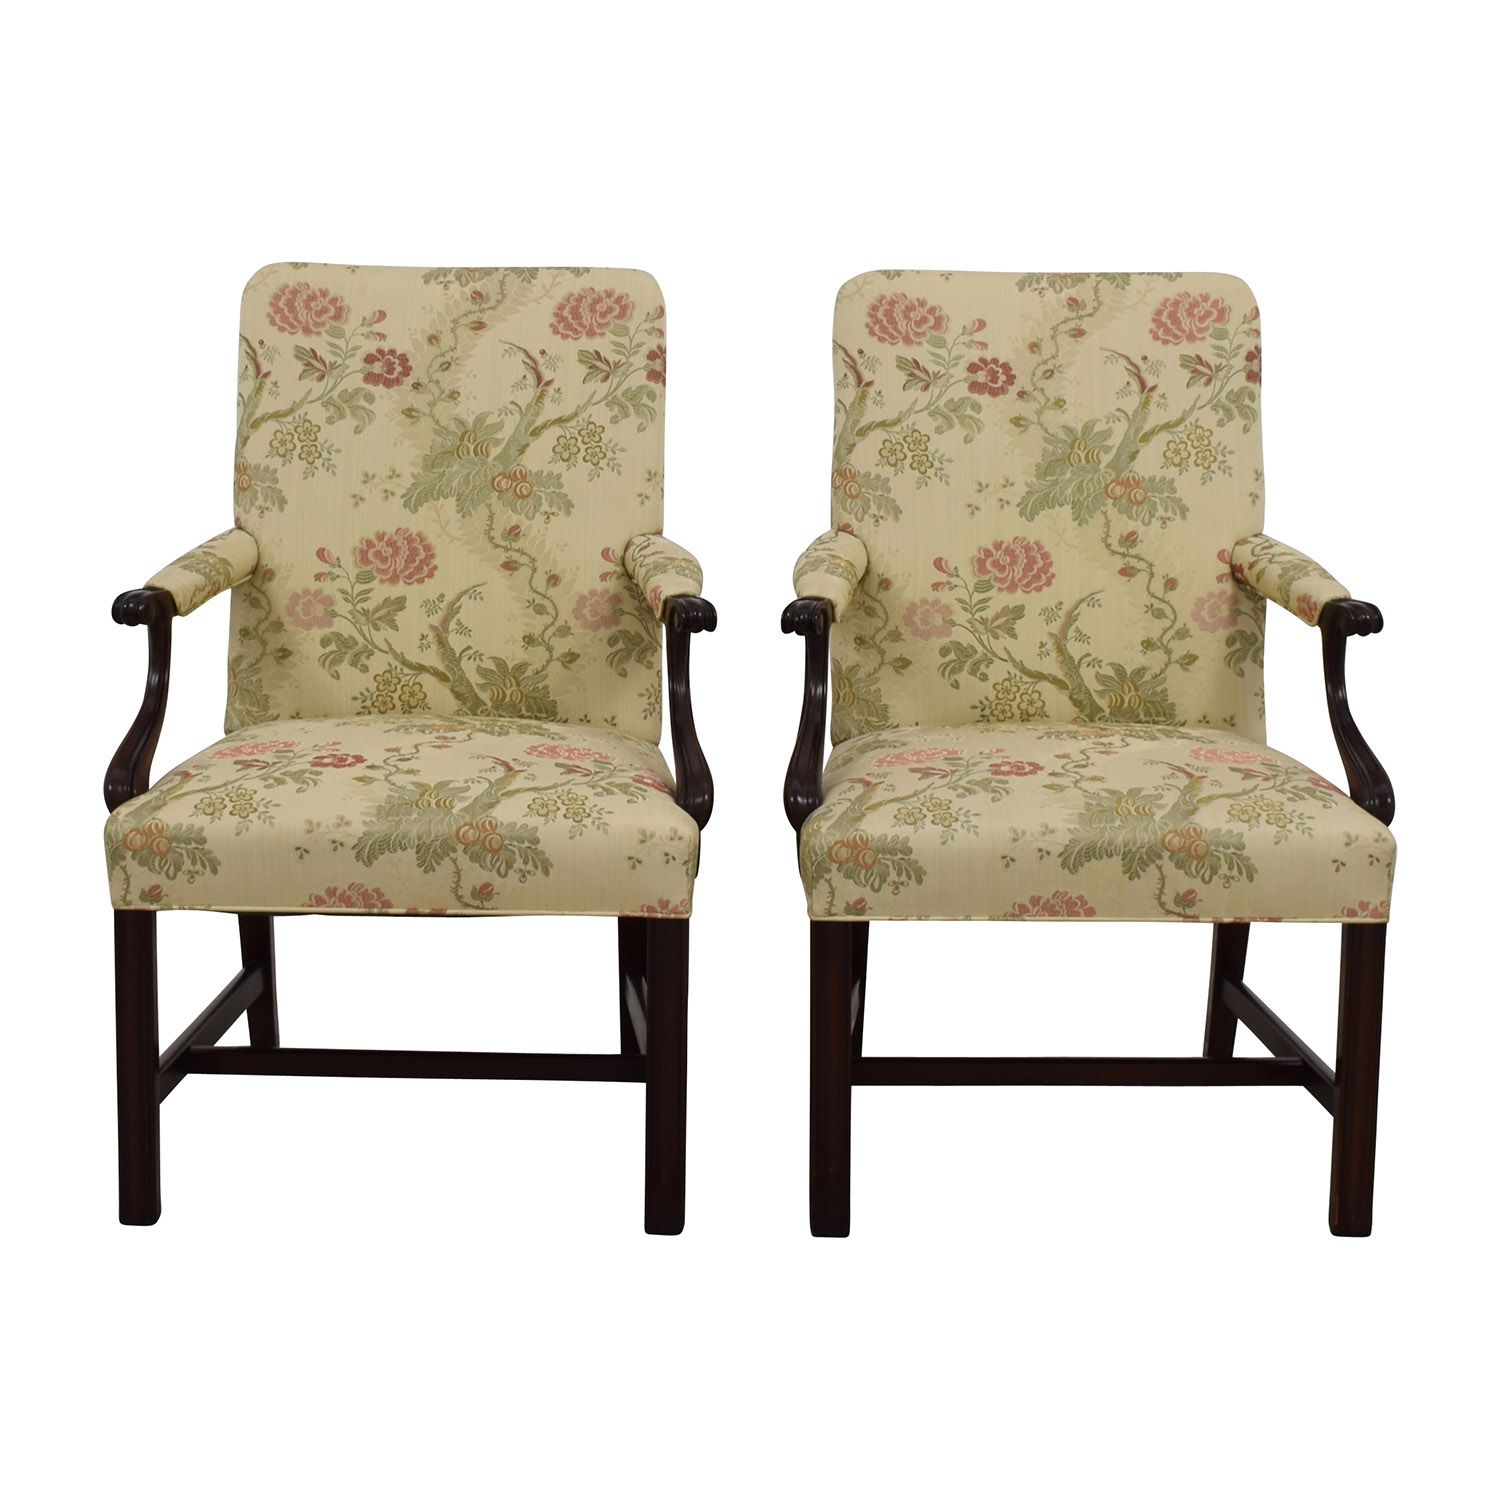 Traditional Upholstered Arm Chair, Set of Two